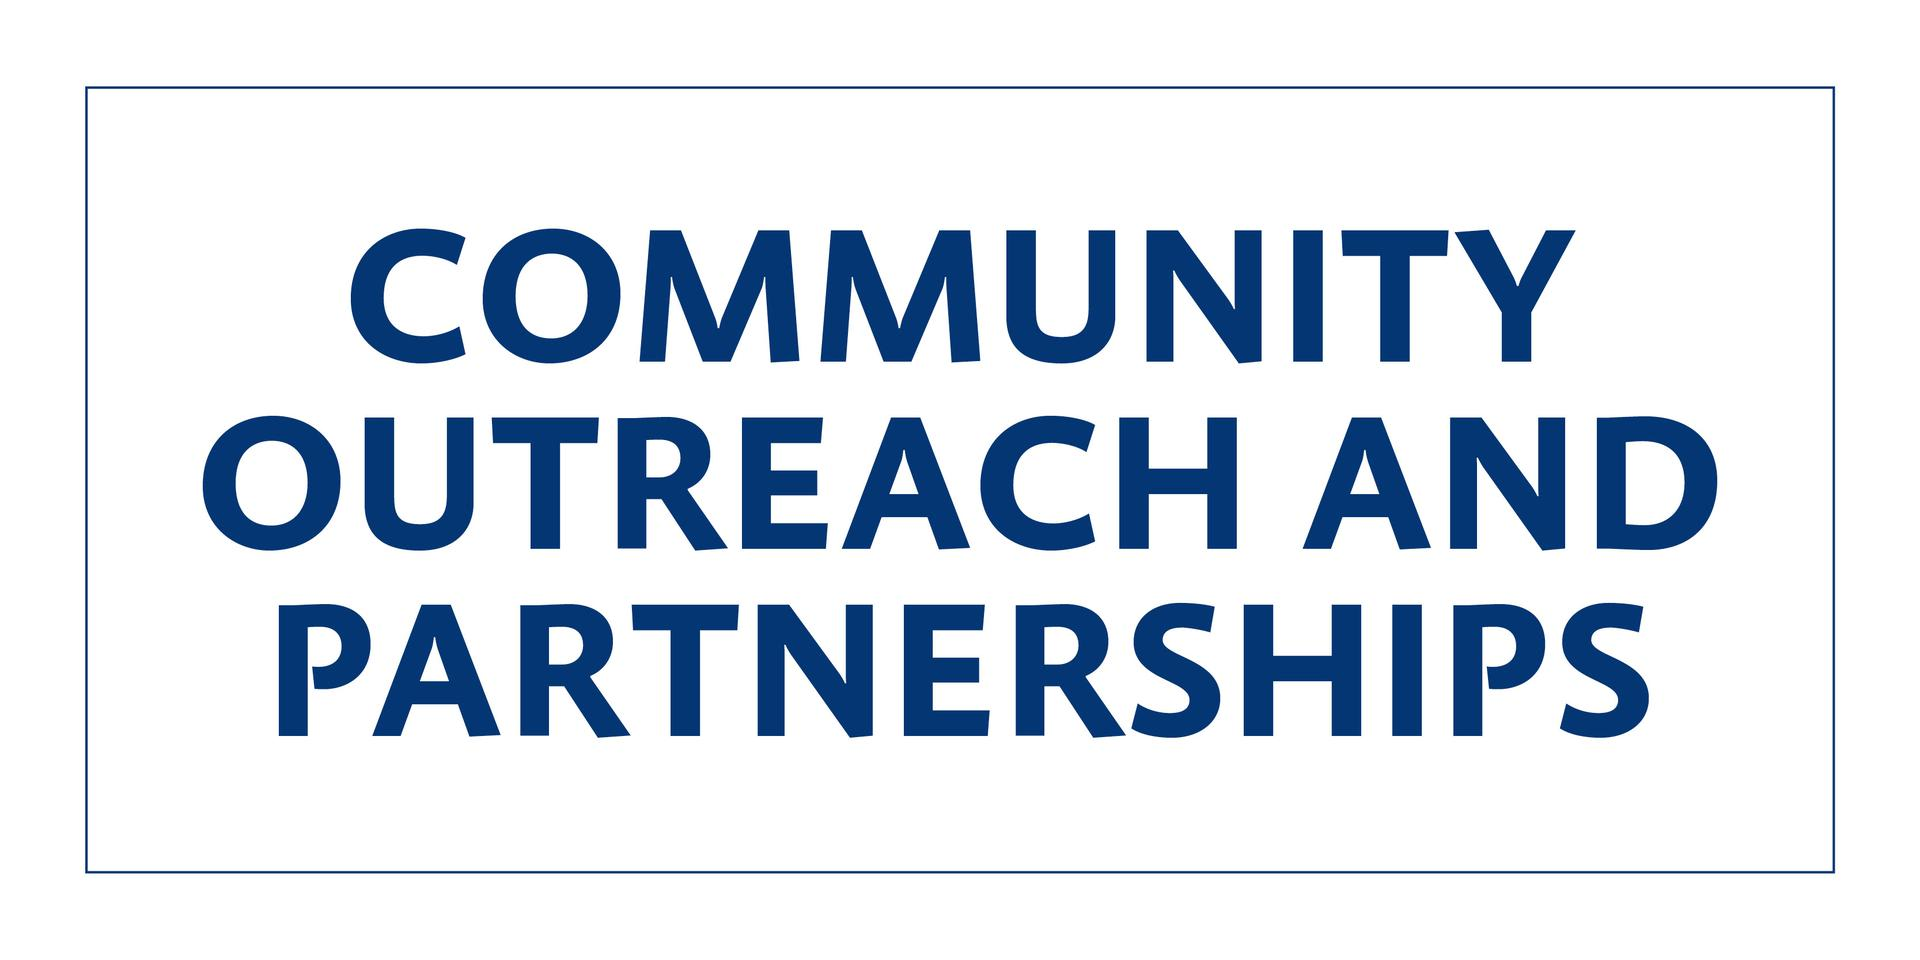 Community Outreach and Partnership